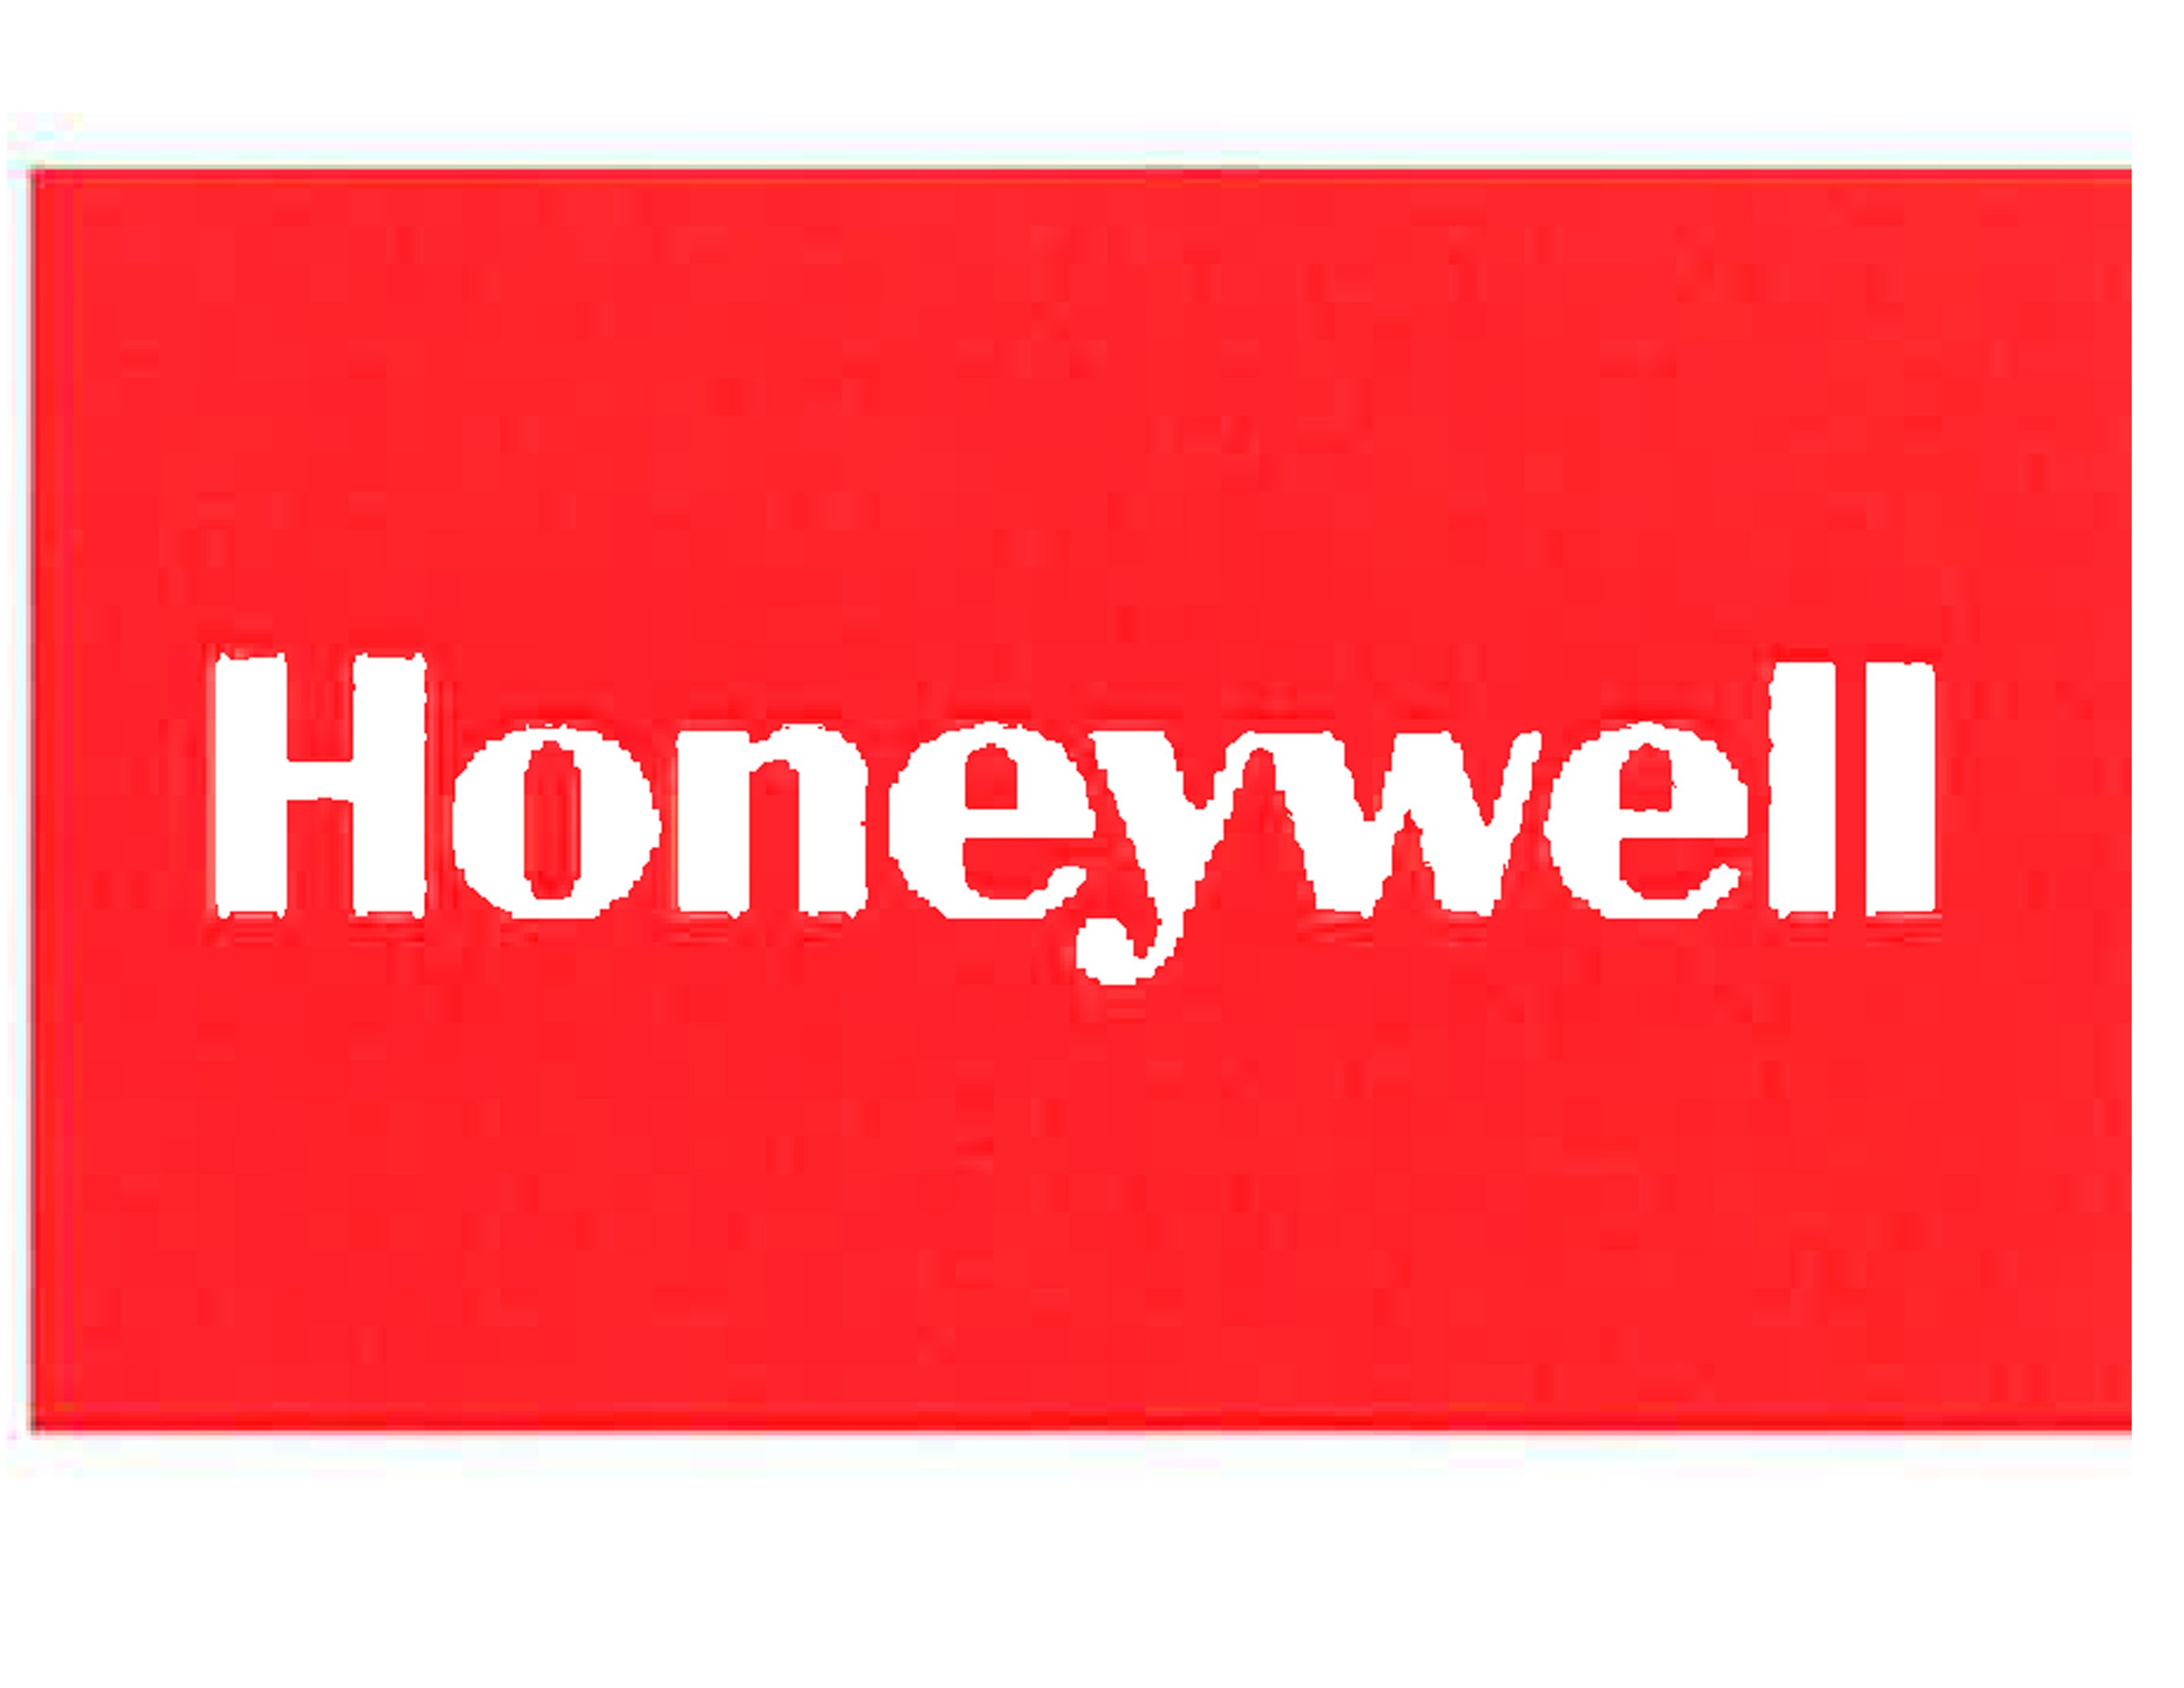 Honeywell Logo - Christie says keeping Honeywell in N.J. was 'personal' for him ...